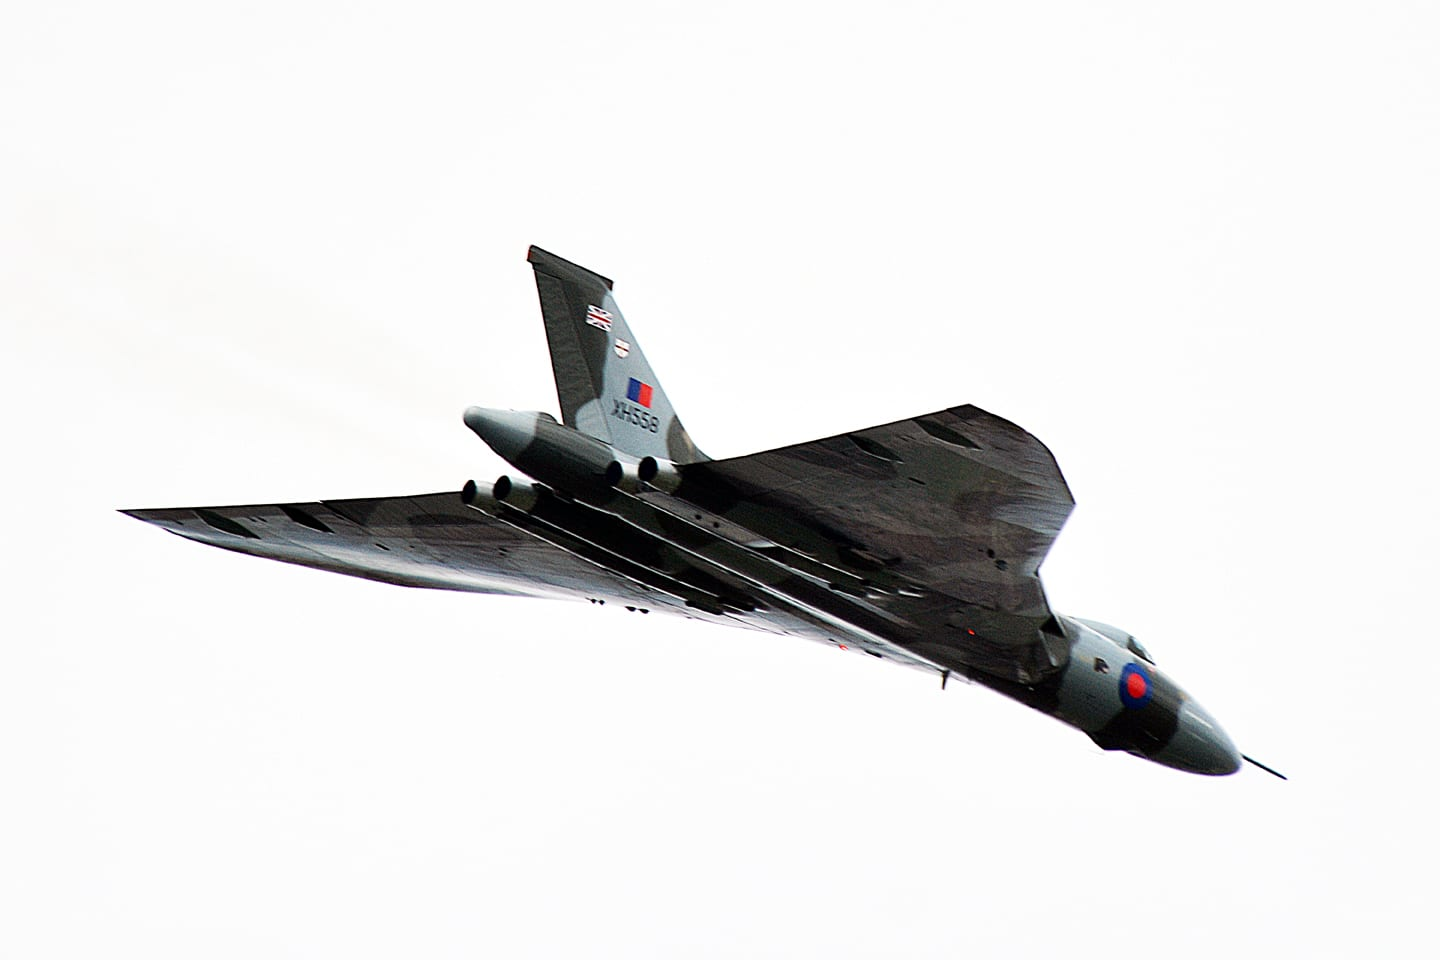 Vulcan at Blackpool Airshow